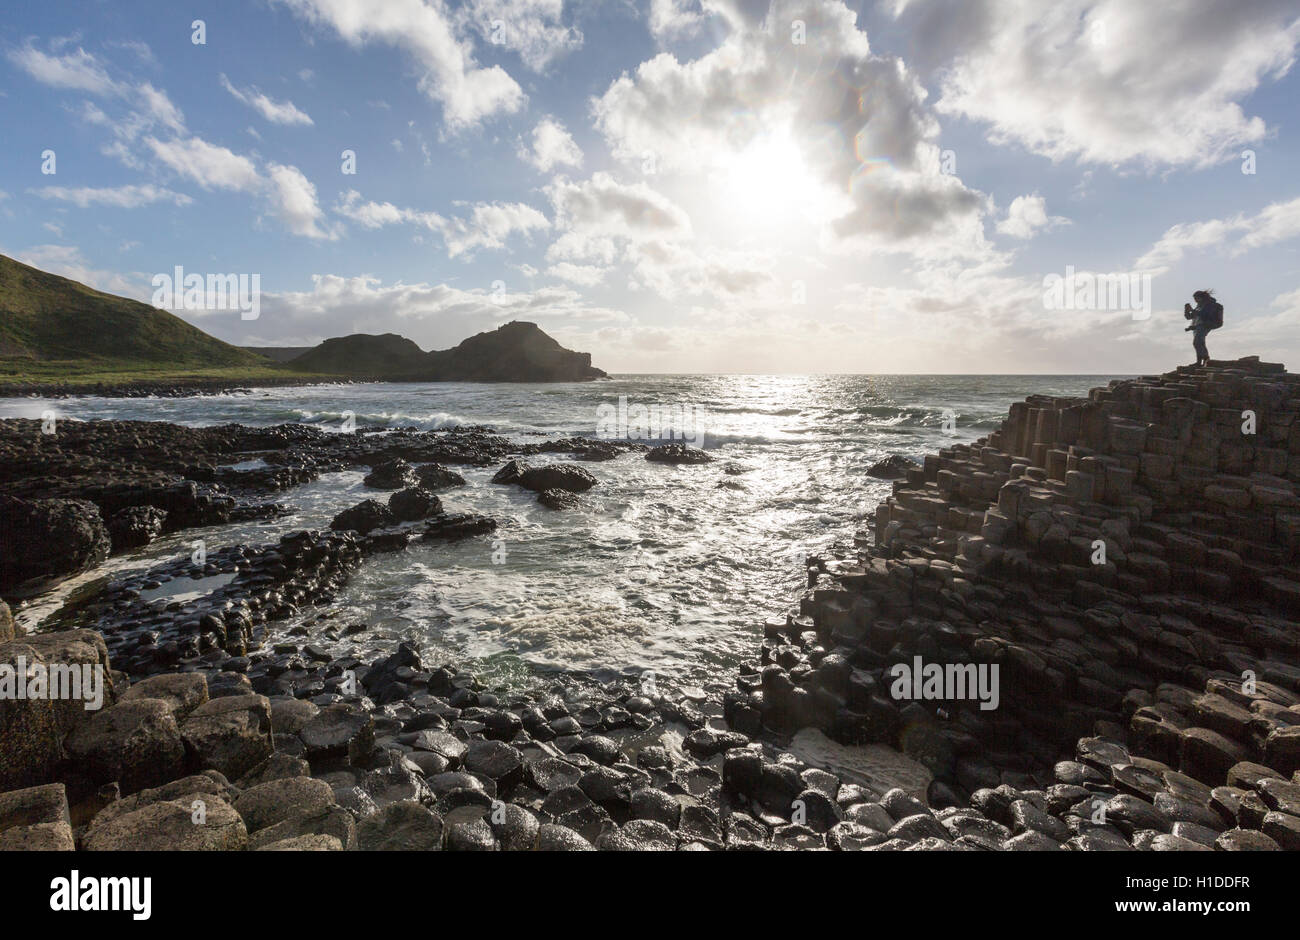 Tourist taking picture in Giant's Causeway at sunset, Bushmills, County Antrim, Northern Ireland, UK - Stock Image